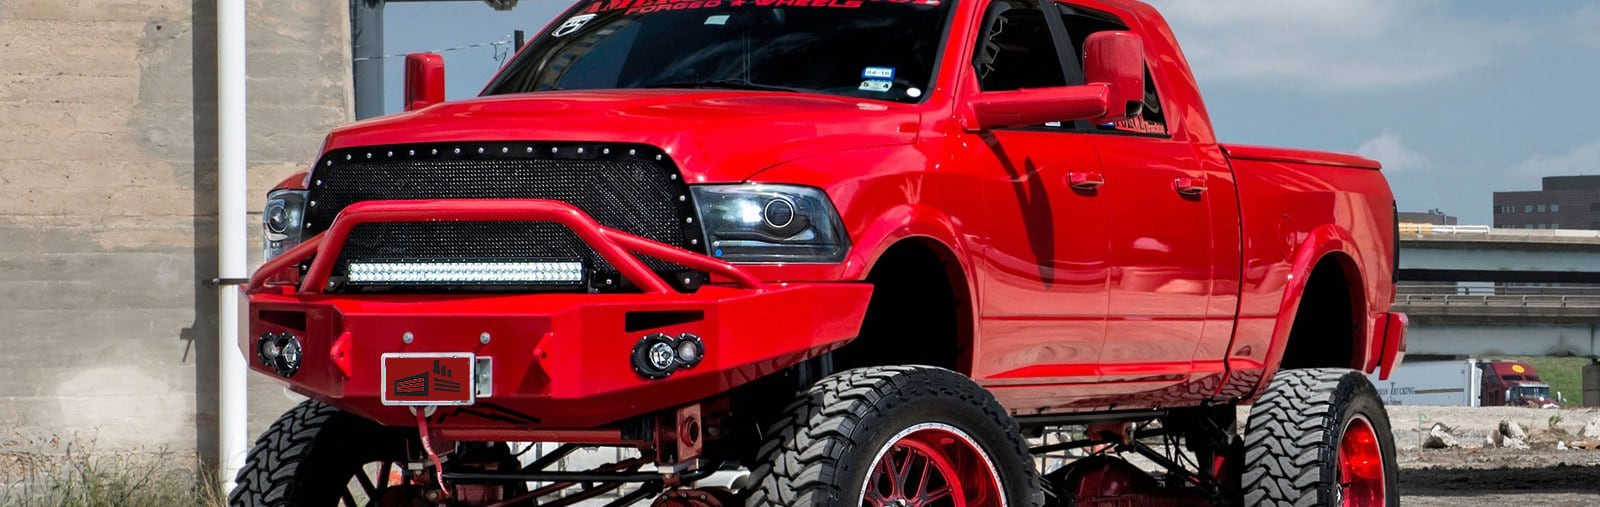 Used Car Factory >> The Used Car Factory Of Denver Used Cars 4x4 Trucks More